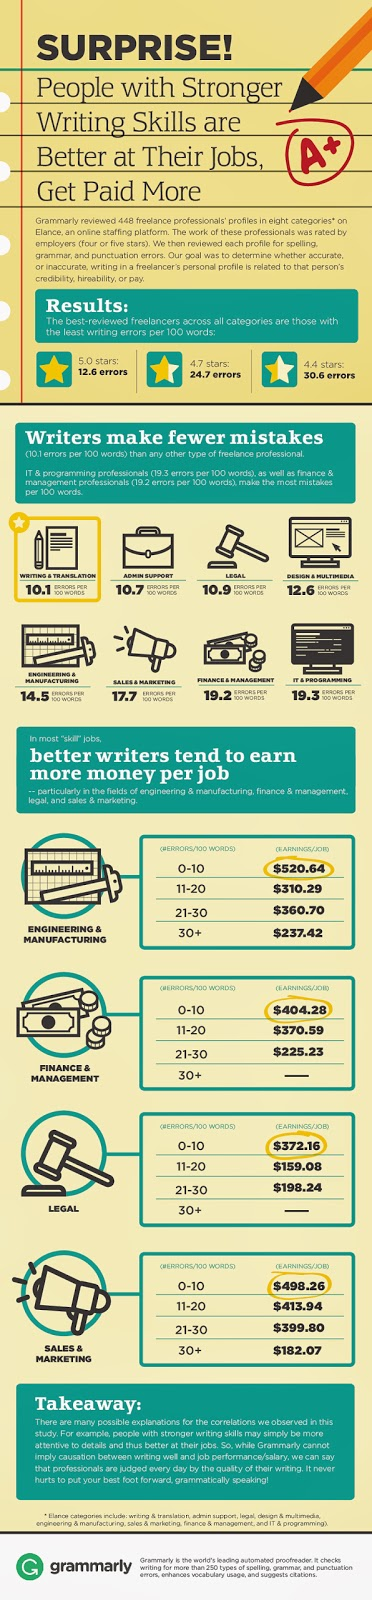 Writing mistakes cost money! - grammarly.com/grammarcheck